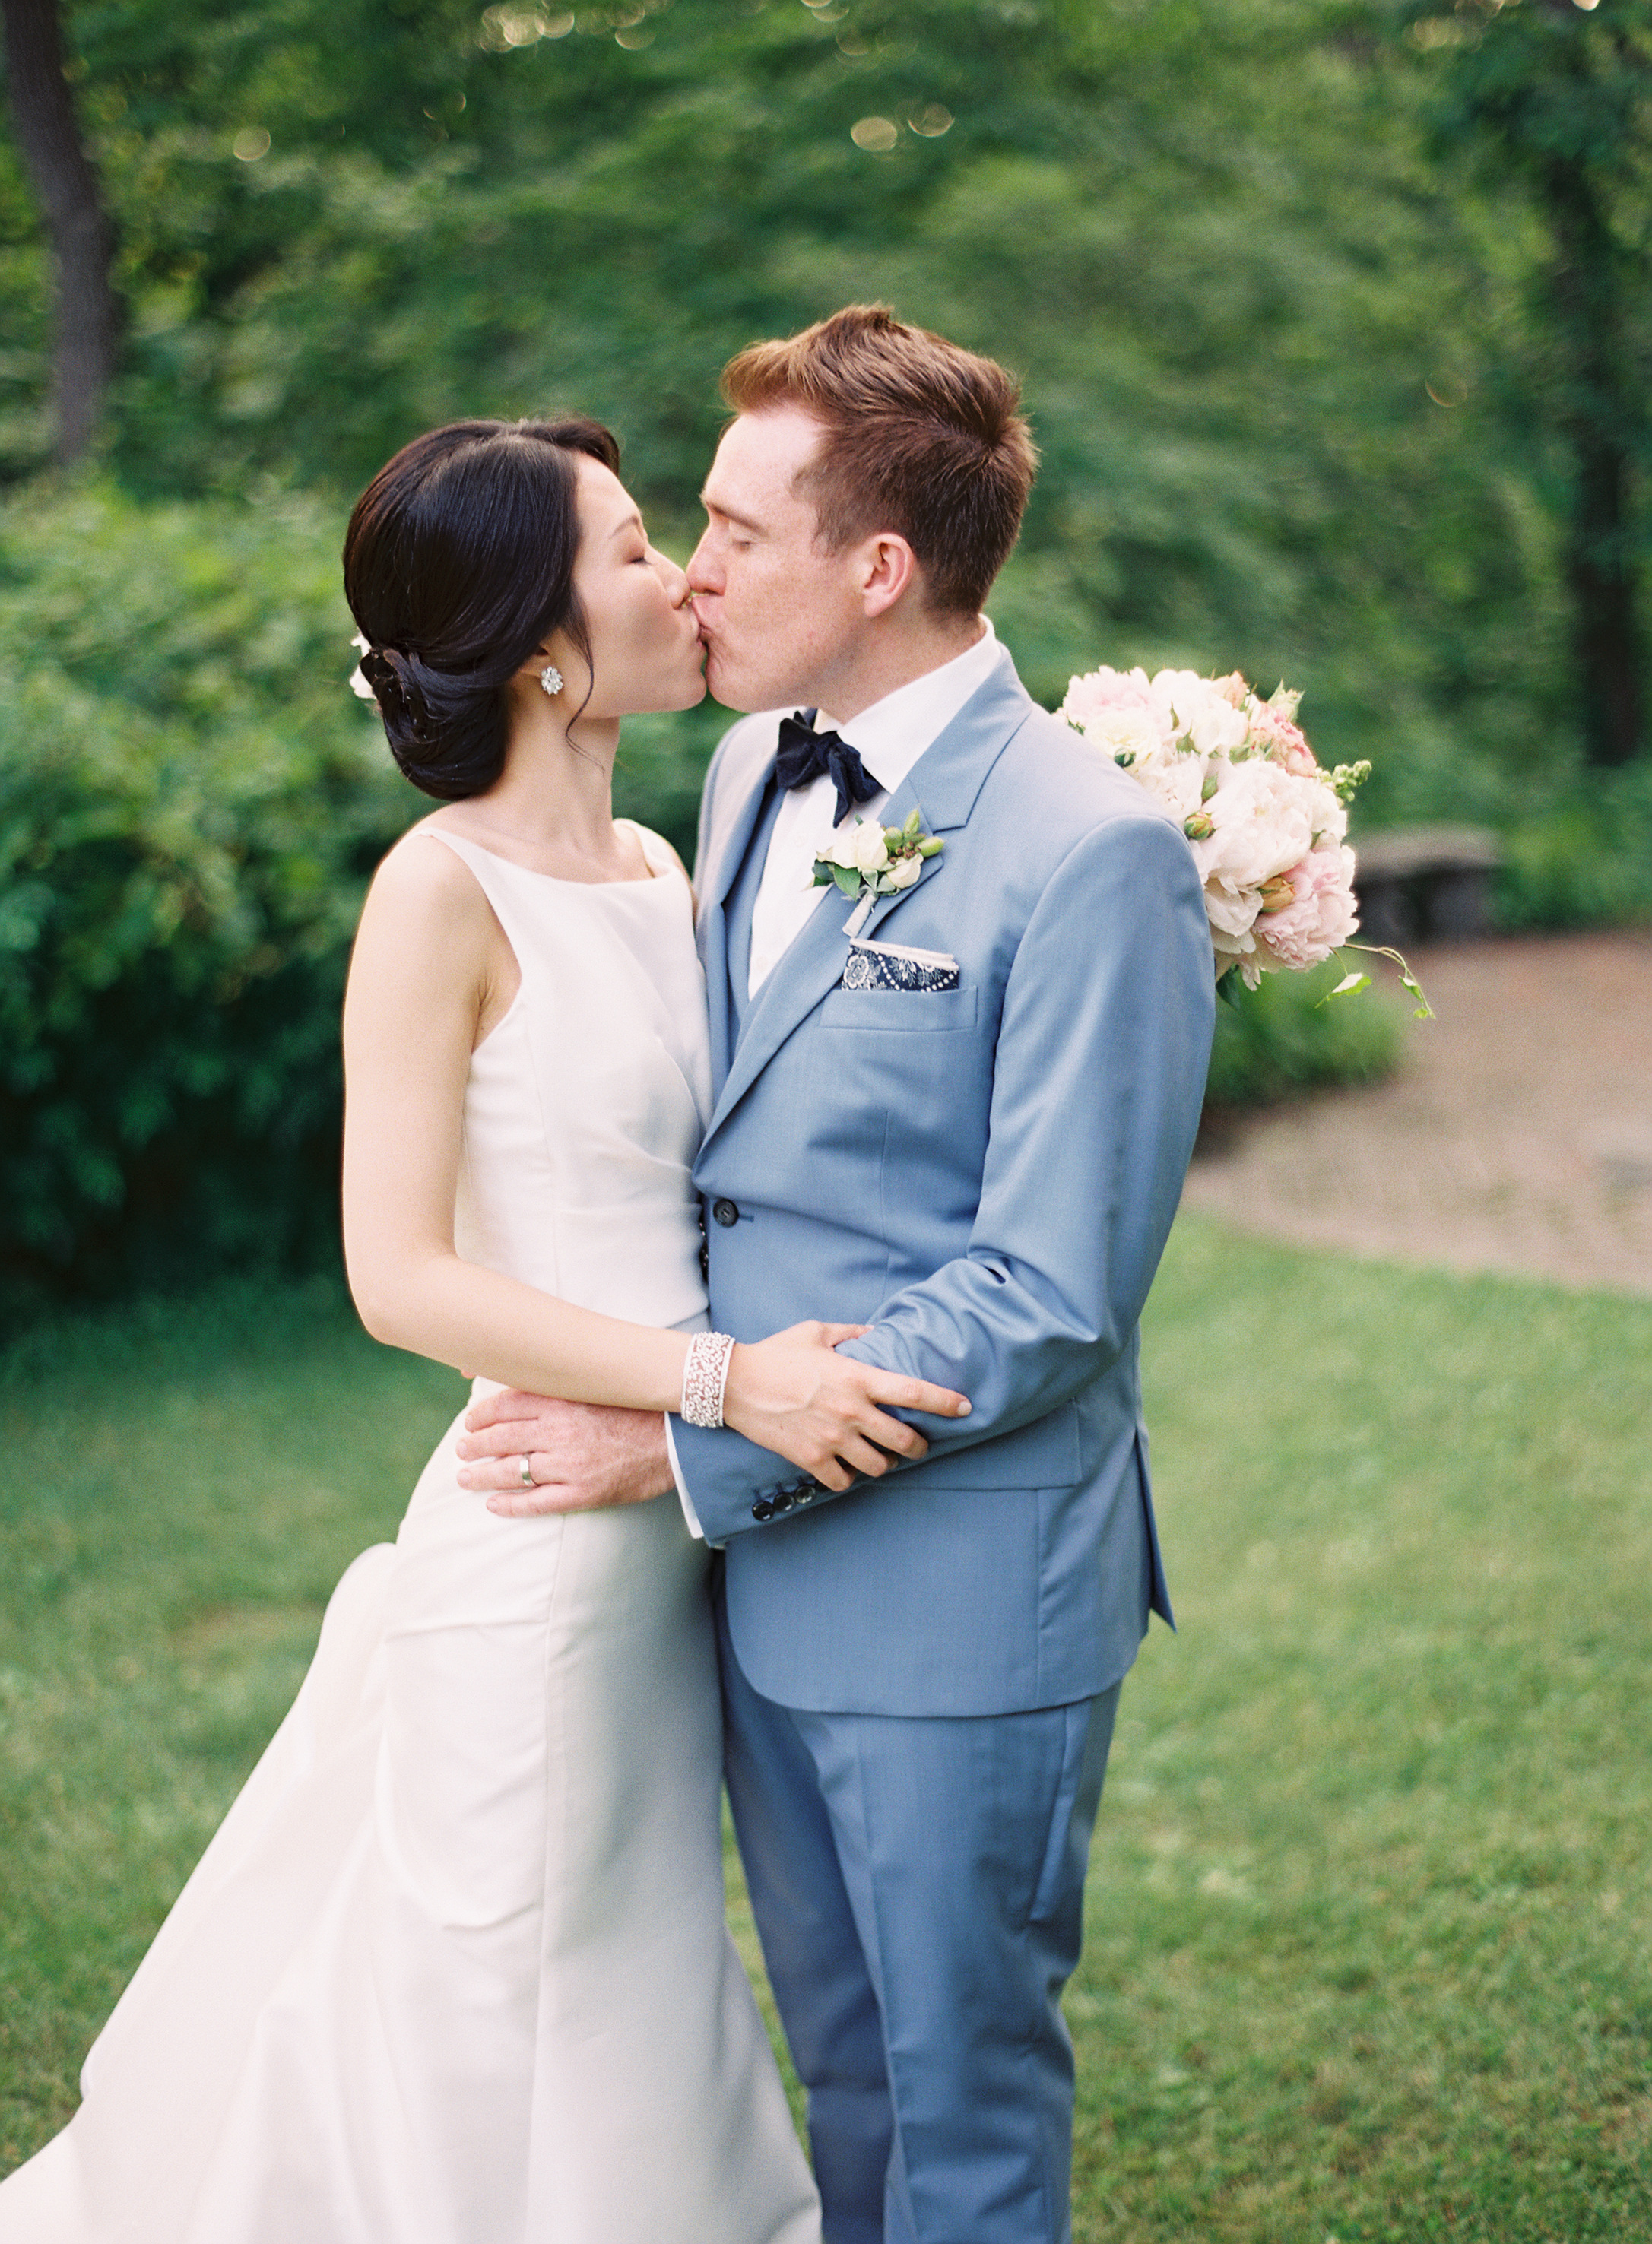 Blue Suit Grooms Attire - Elizabeth Anne Designs: The Wedding Blog